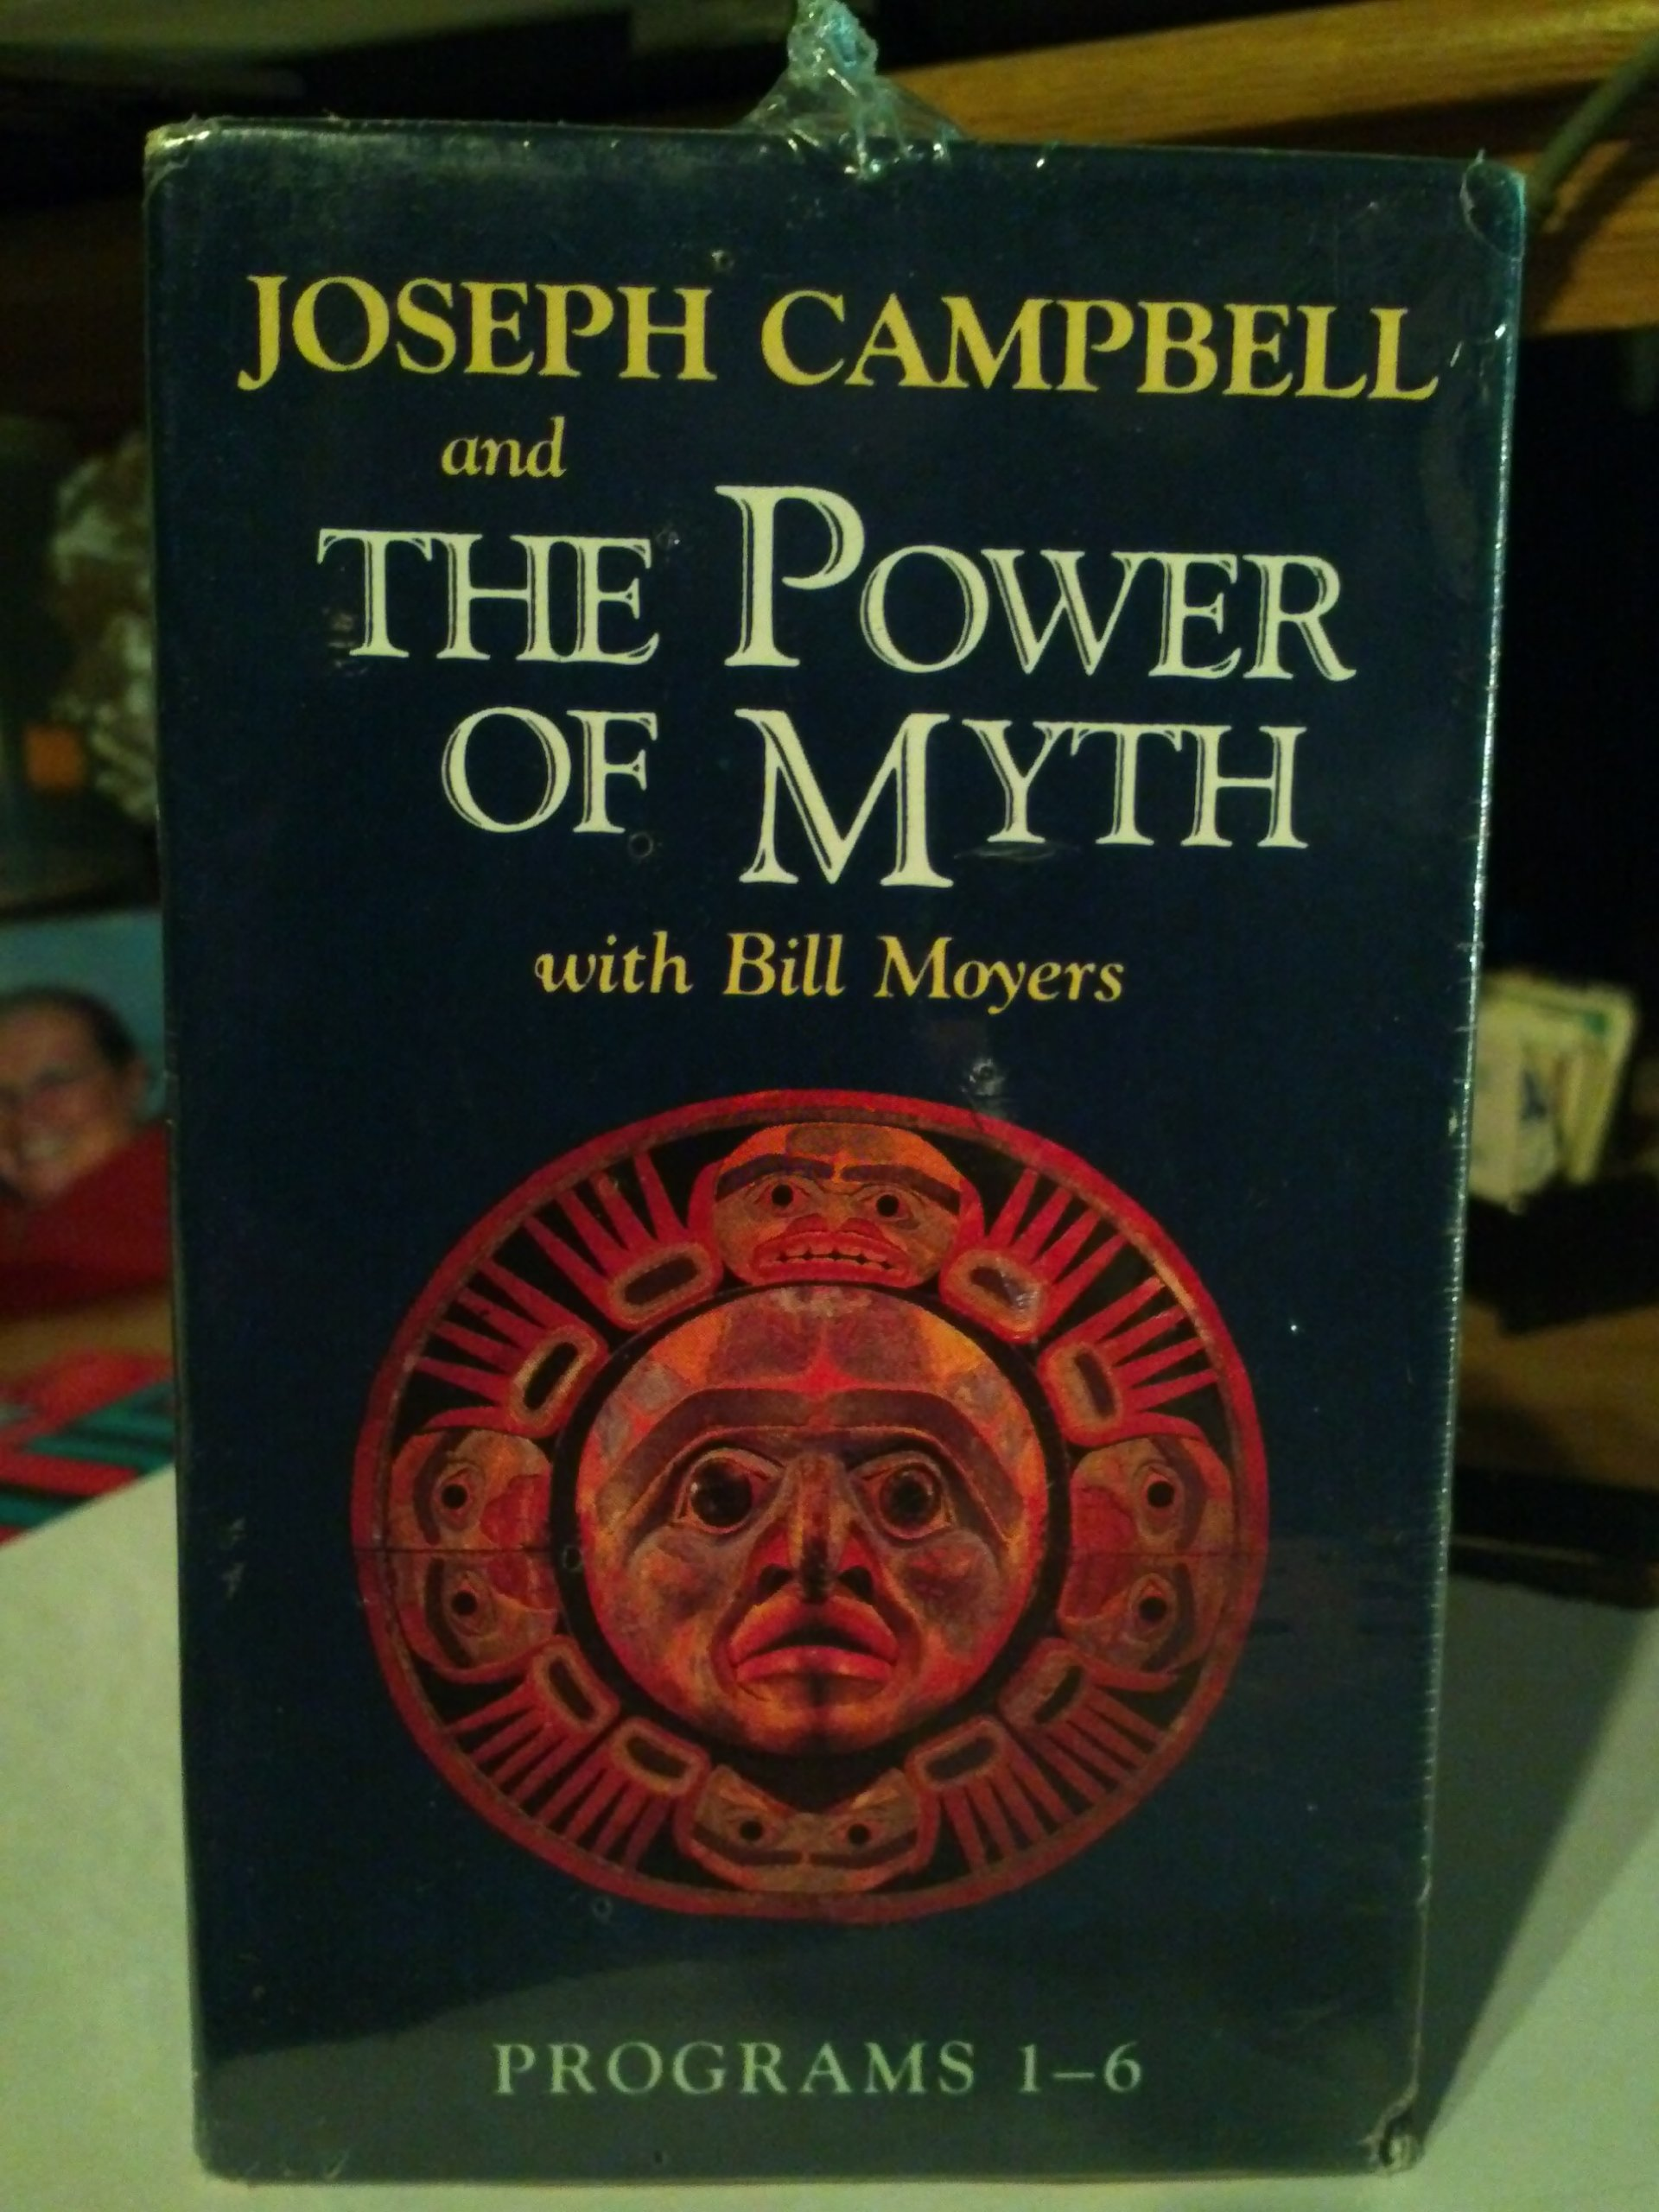 The Power of Myth Programs 1 - 6 Audiocassette: Joseph Campbell: Amazon.com:  Books